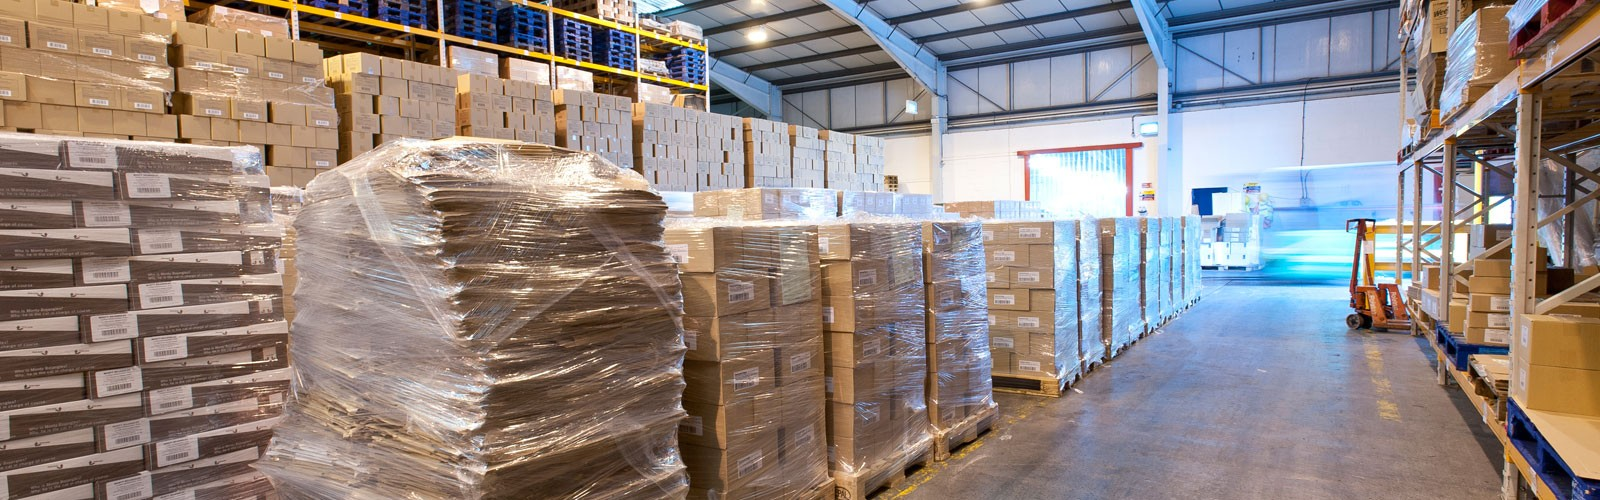 Contract Packing with Marsden Packaging - Marsden Packaging